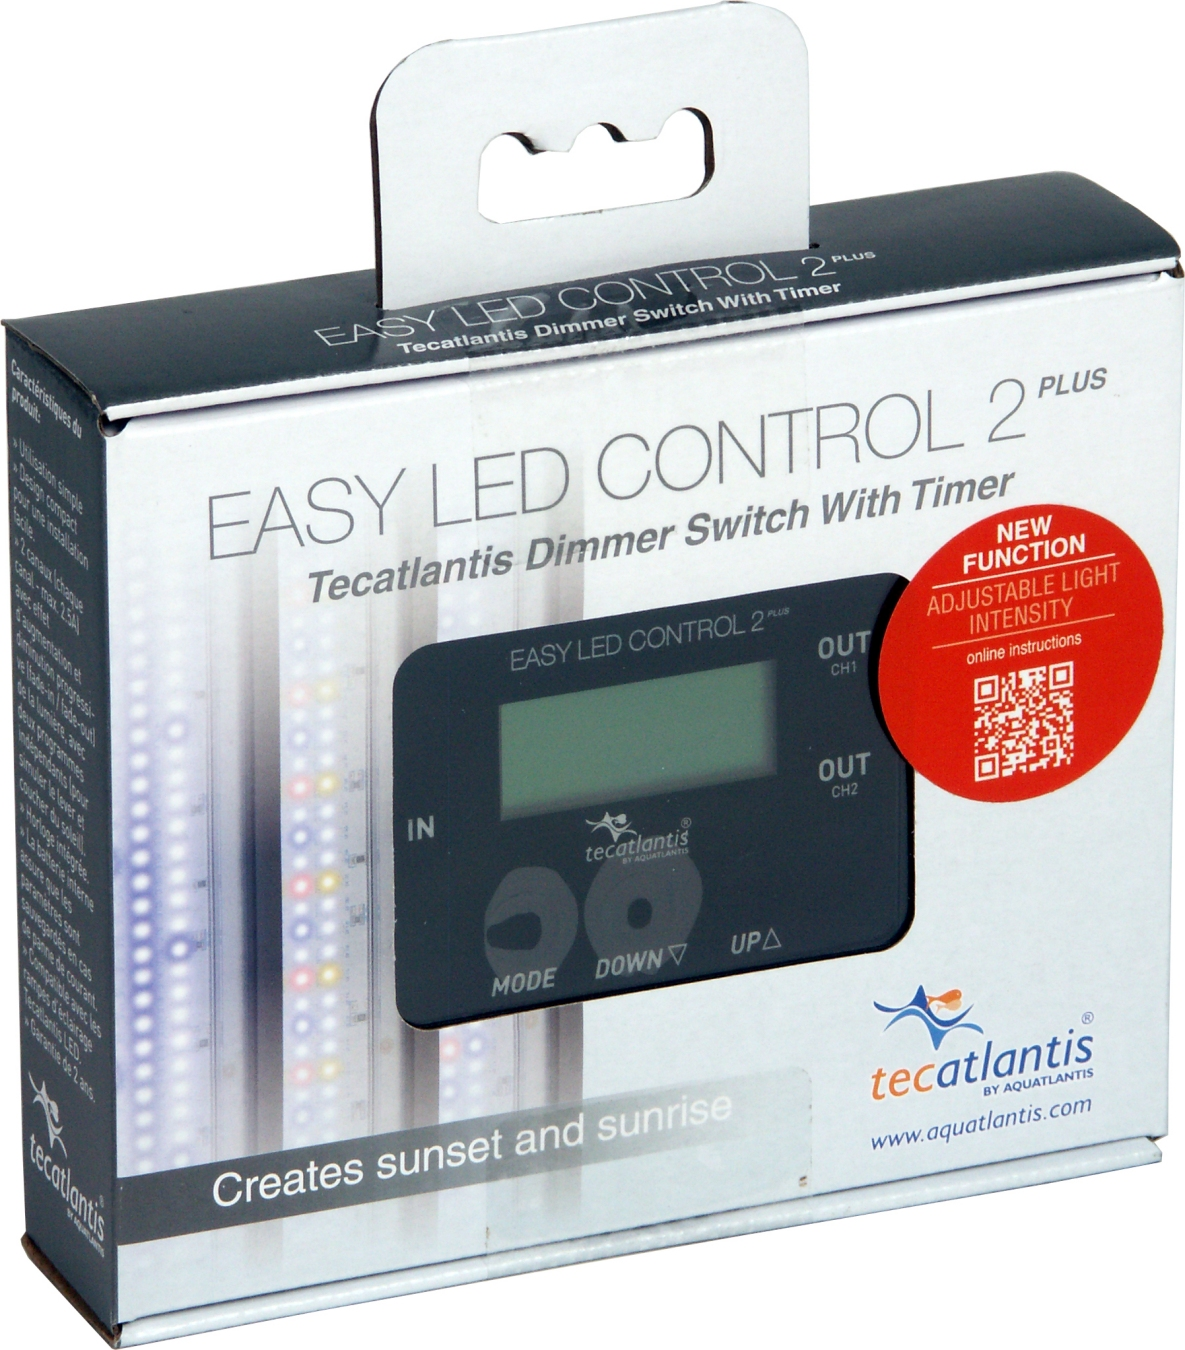 Preise Aquatlantis Easy LED Control 2 Plus